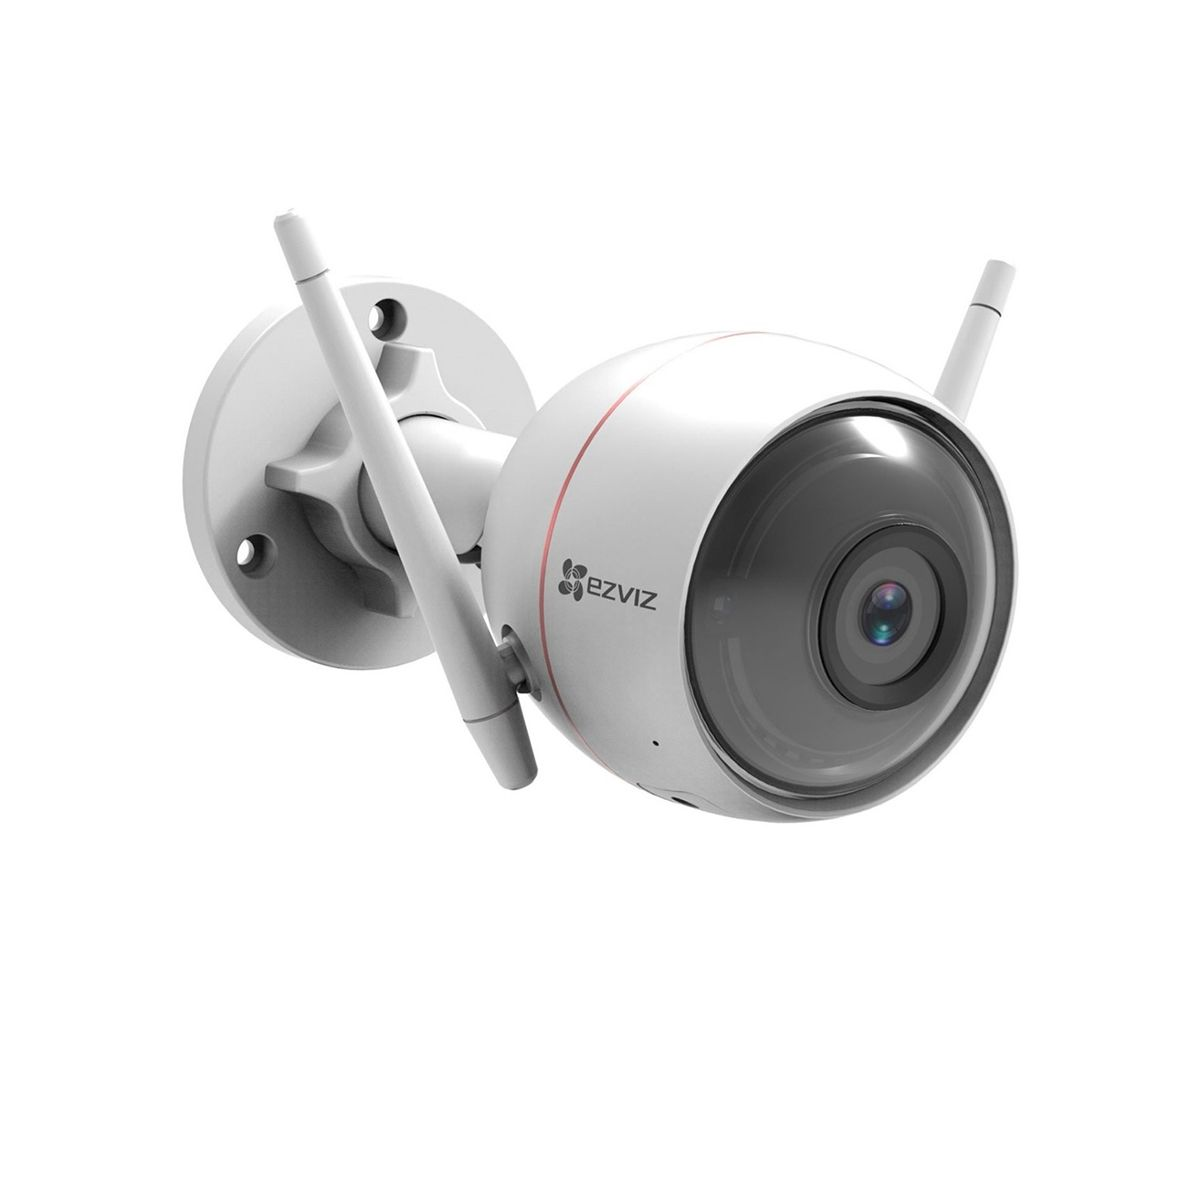 Cámaras Ezviz Interperie IP 720p WiFi CS-CV310-A0-3B1WFR